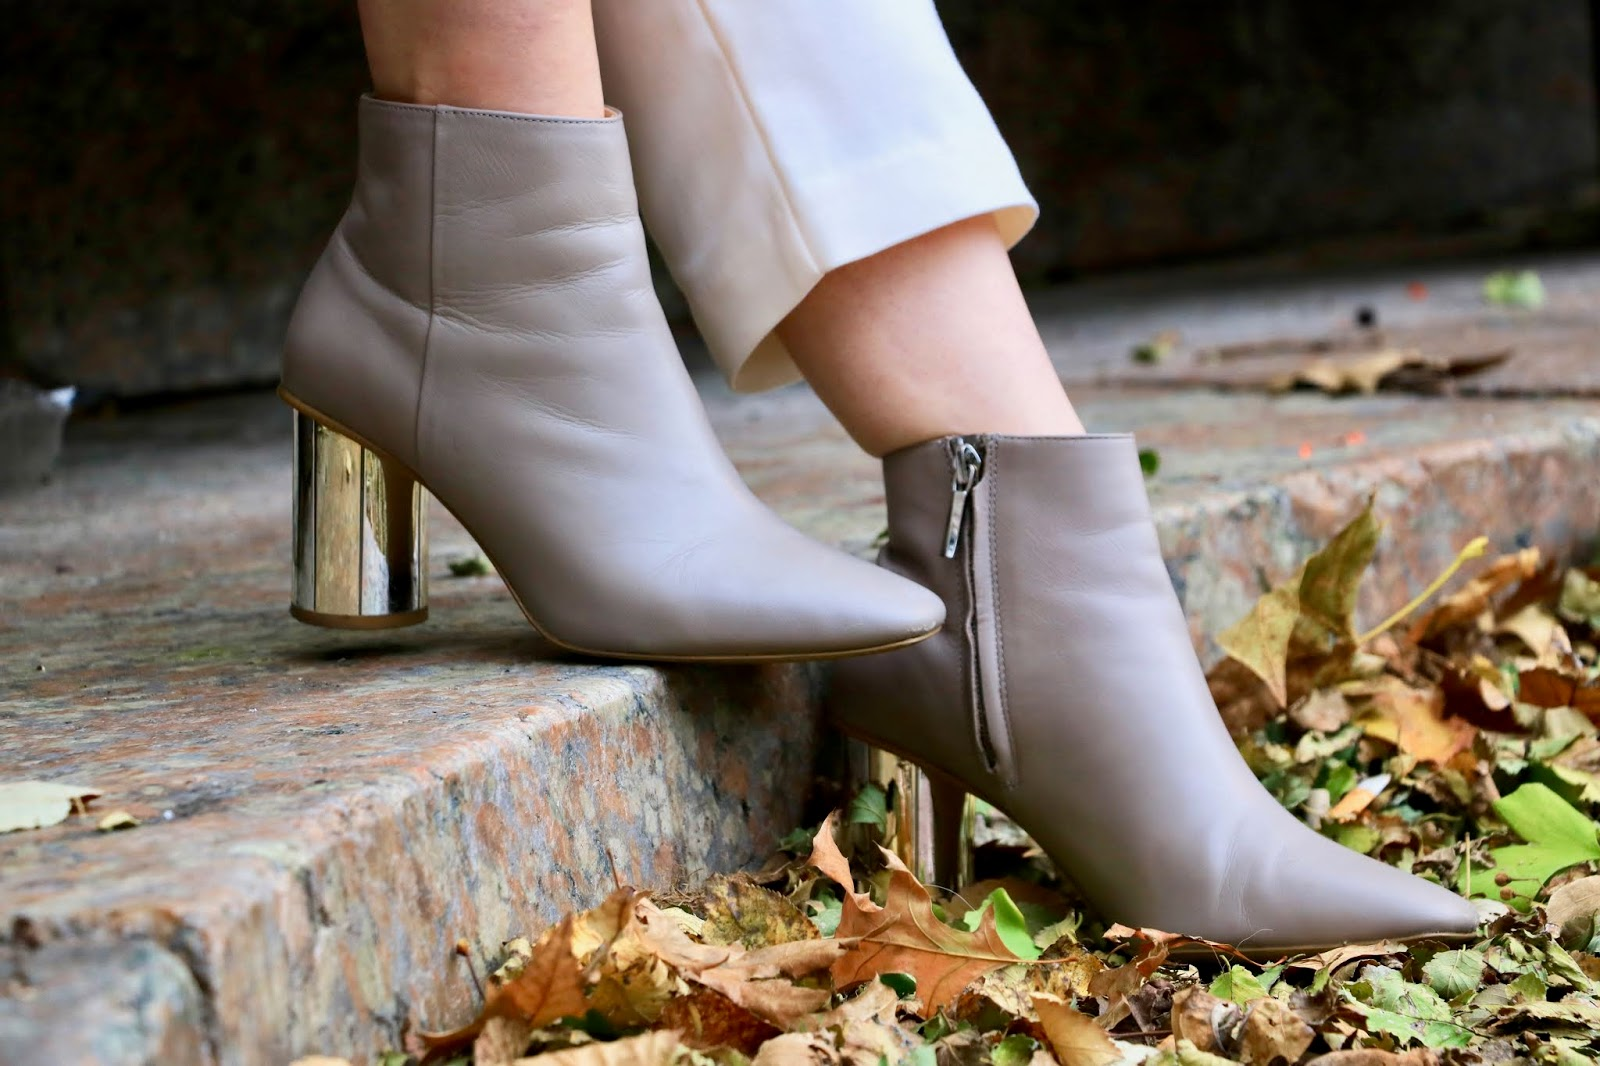 Nyc fashion influencer Kathleen Harper wearing nude Zara booties with a metallic heel.